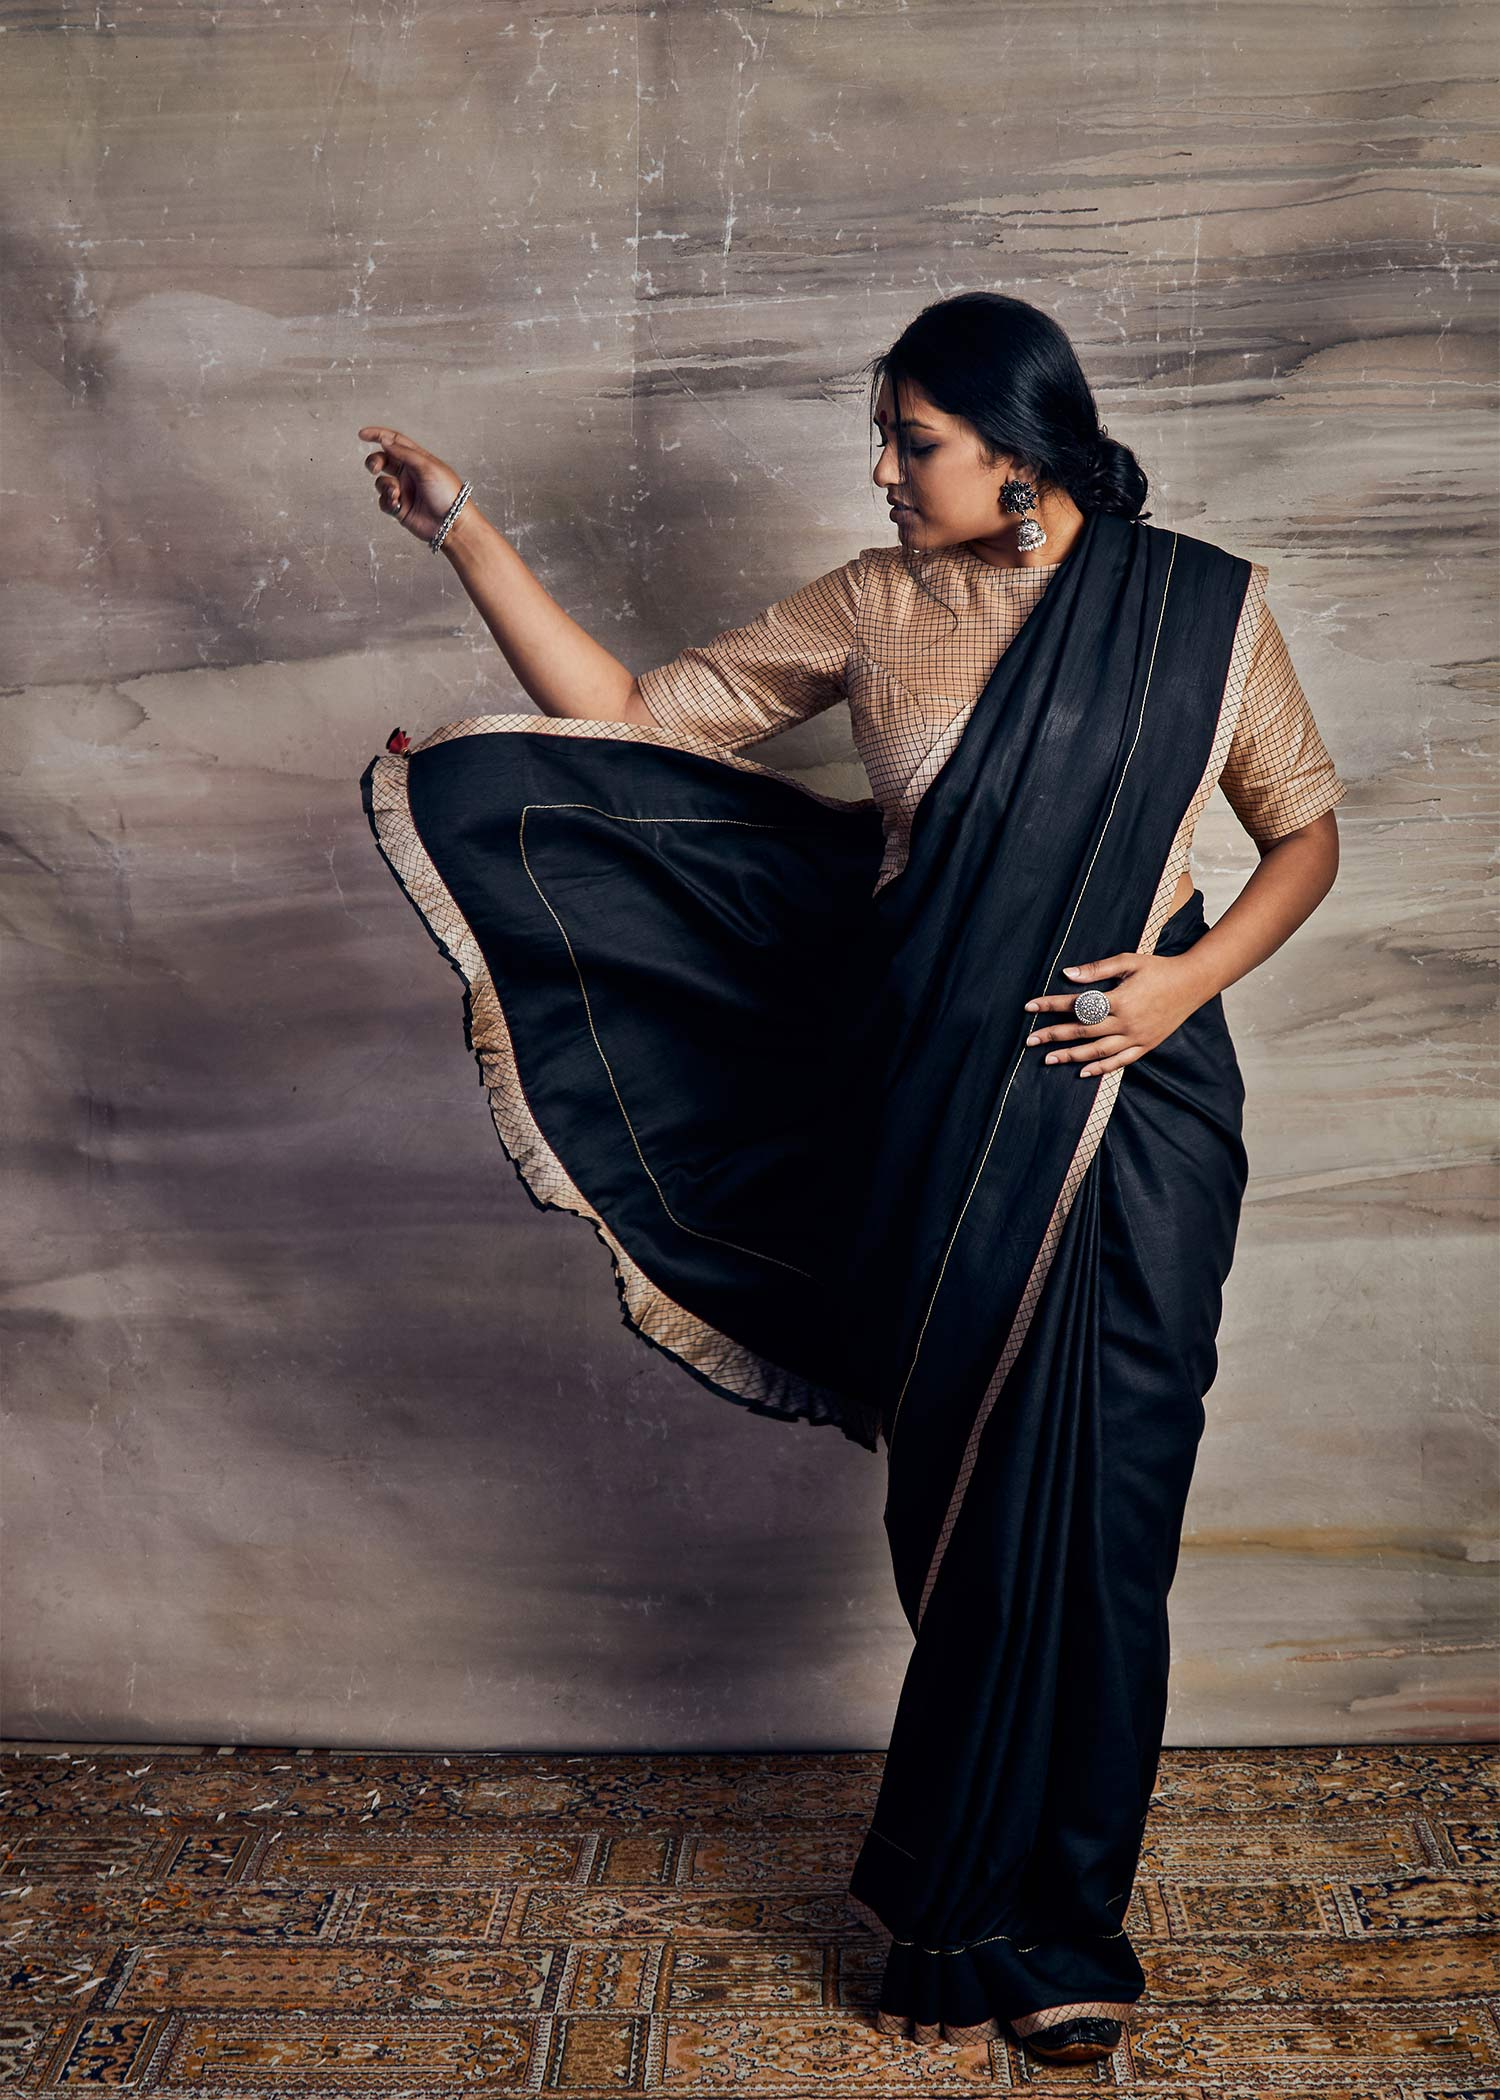 catalog/A-MISRI/black-saree-1.jpg